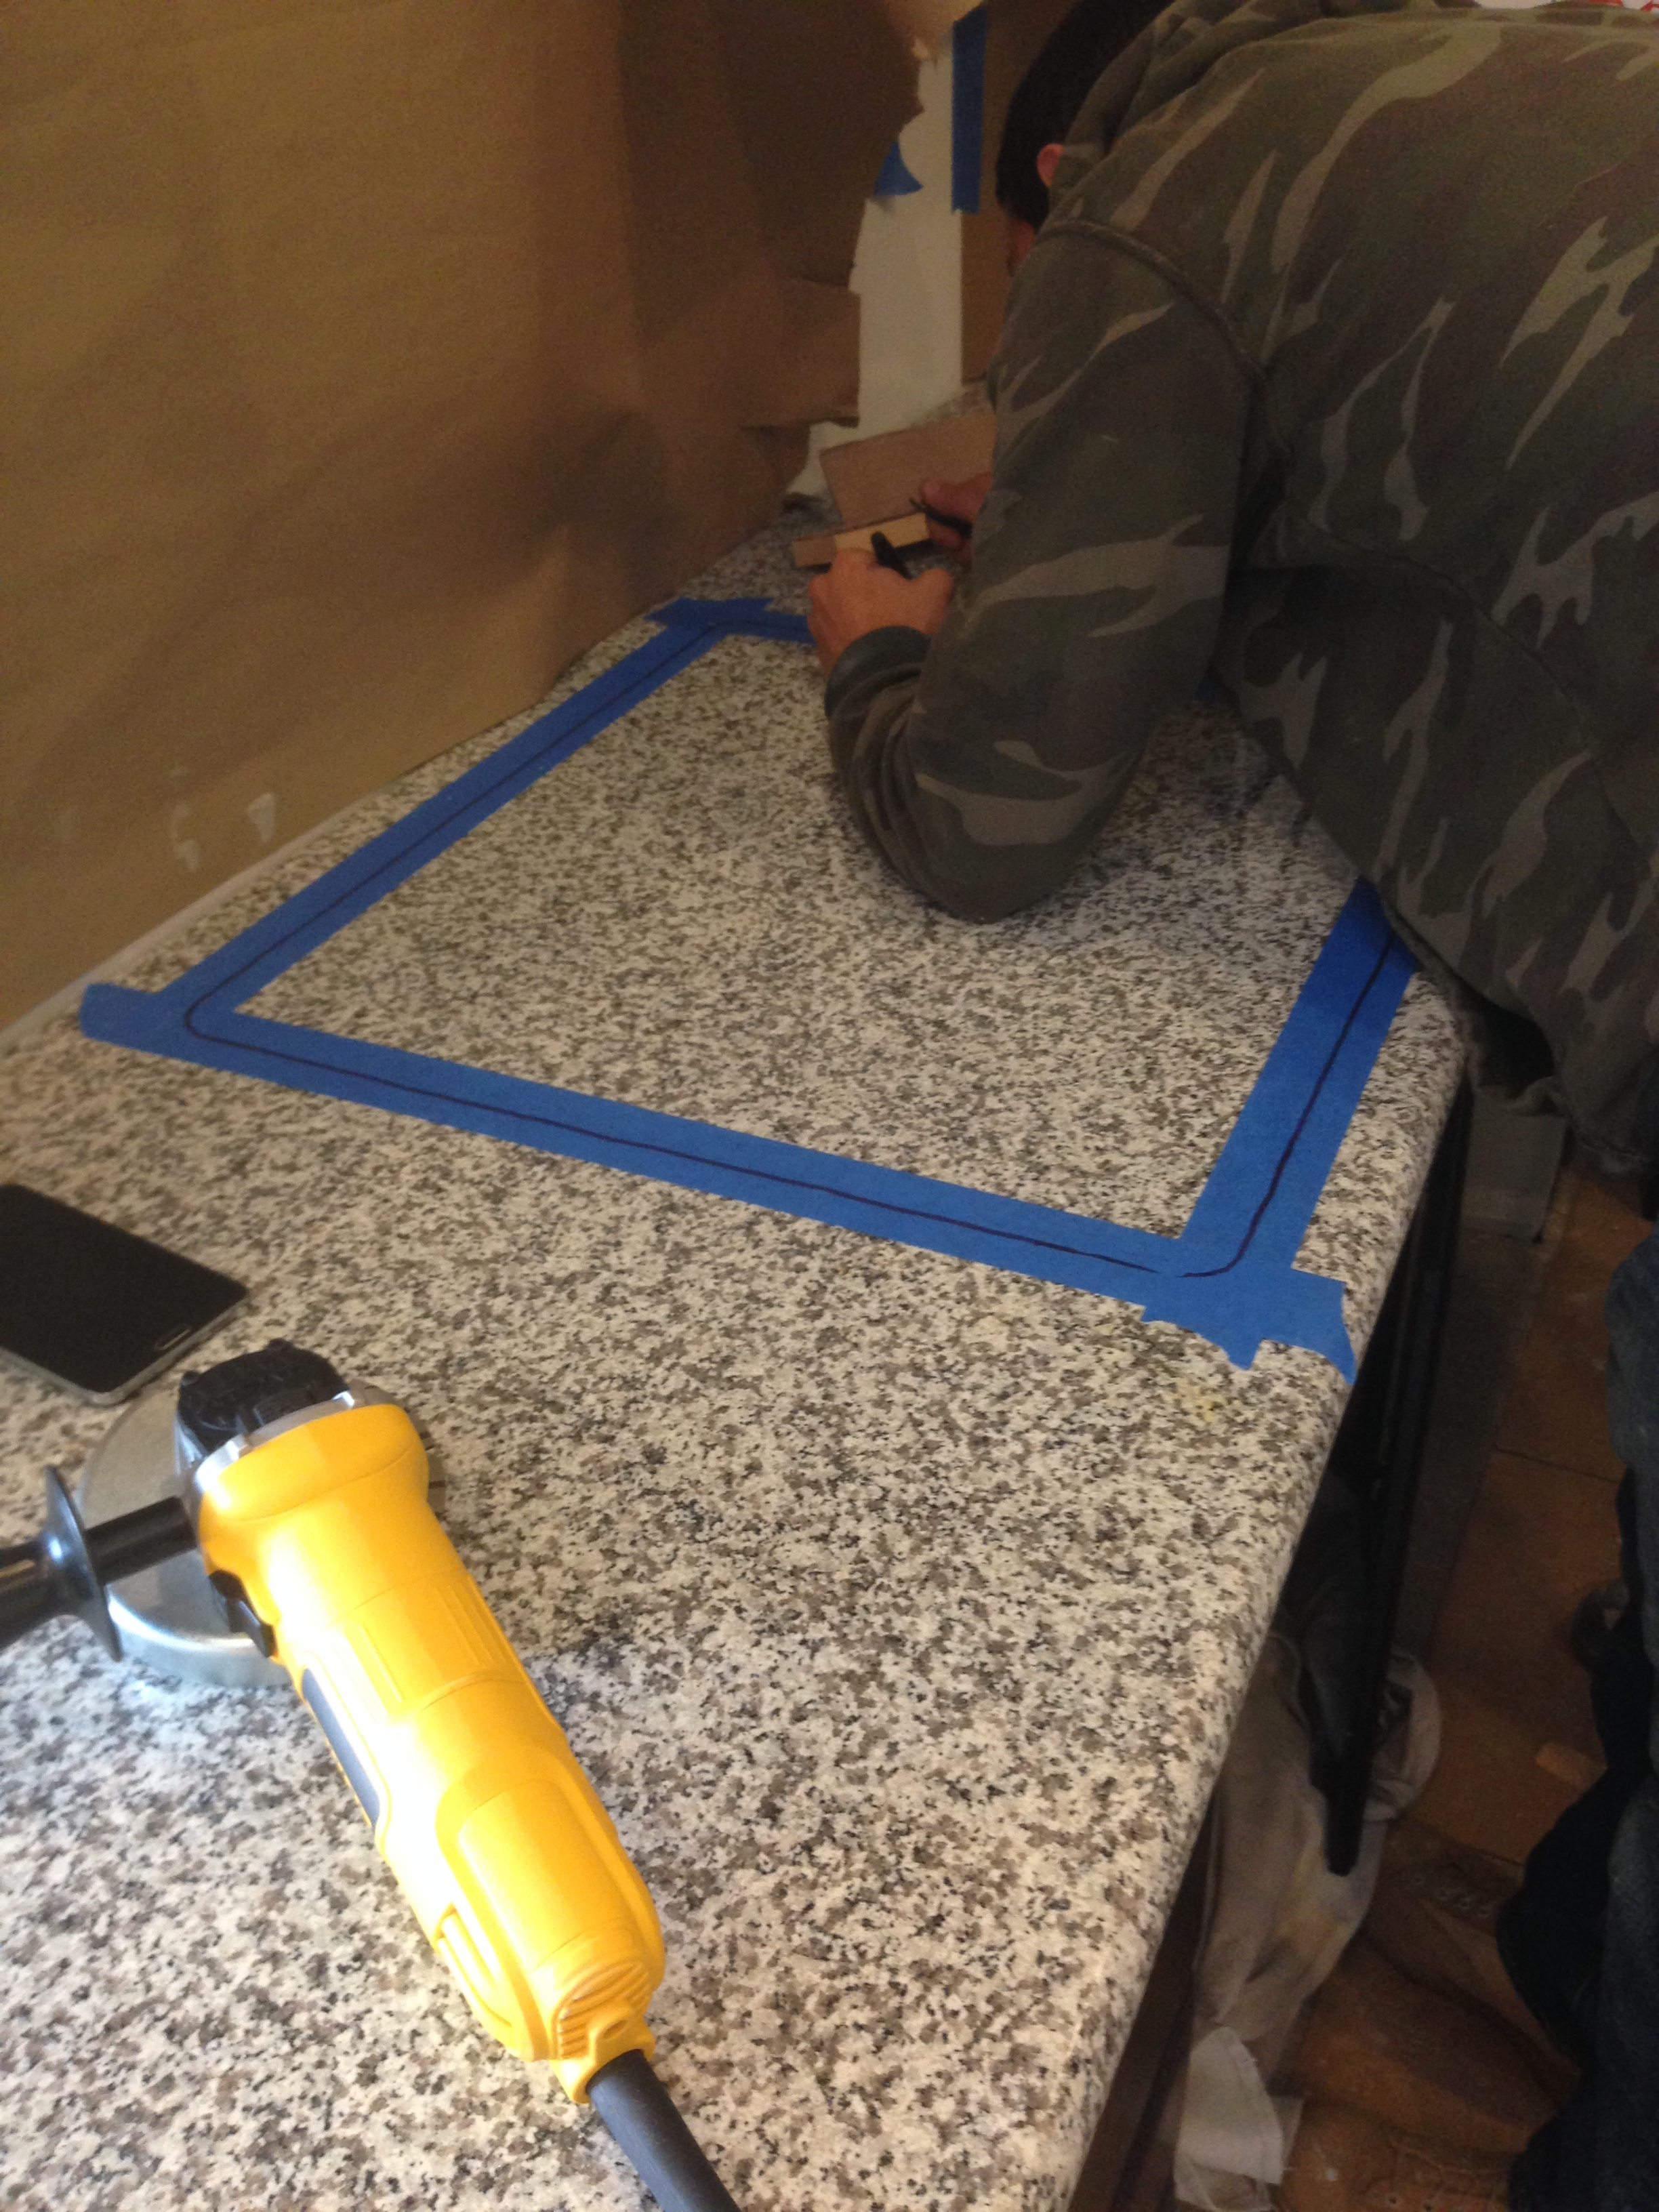 How To Grind Granite Countertops How We Diy 39d Our Way To Real Granite Countertops